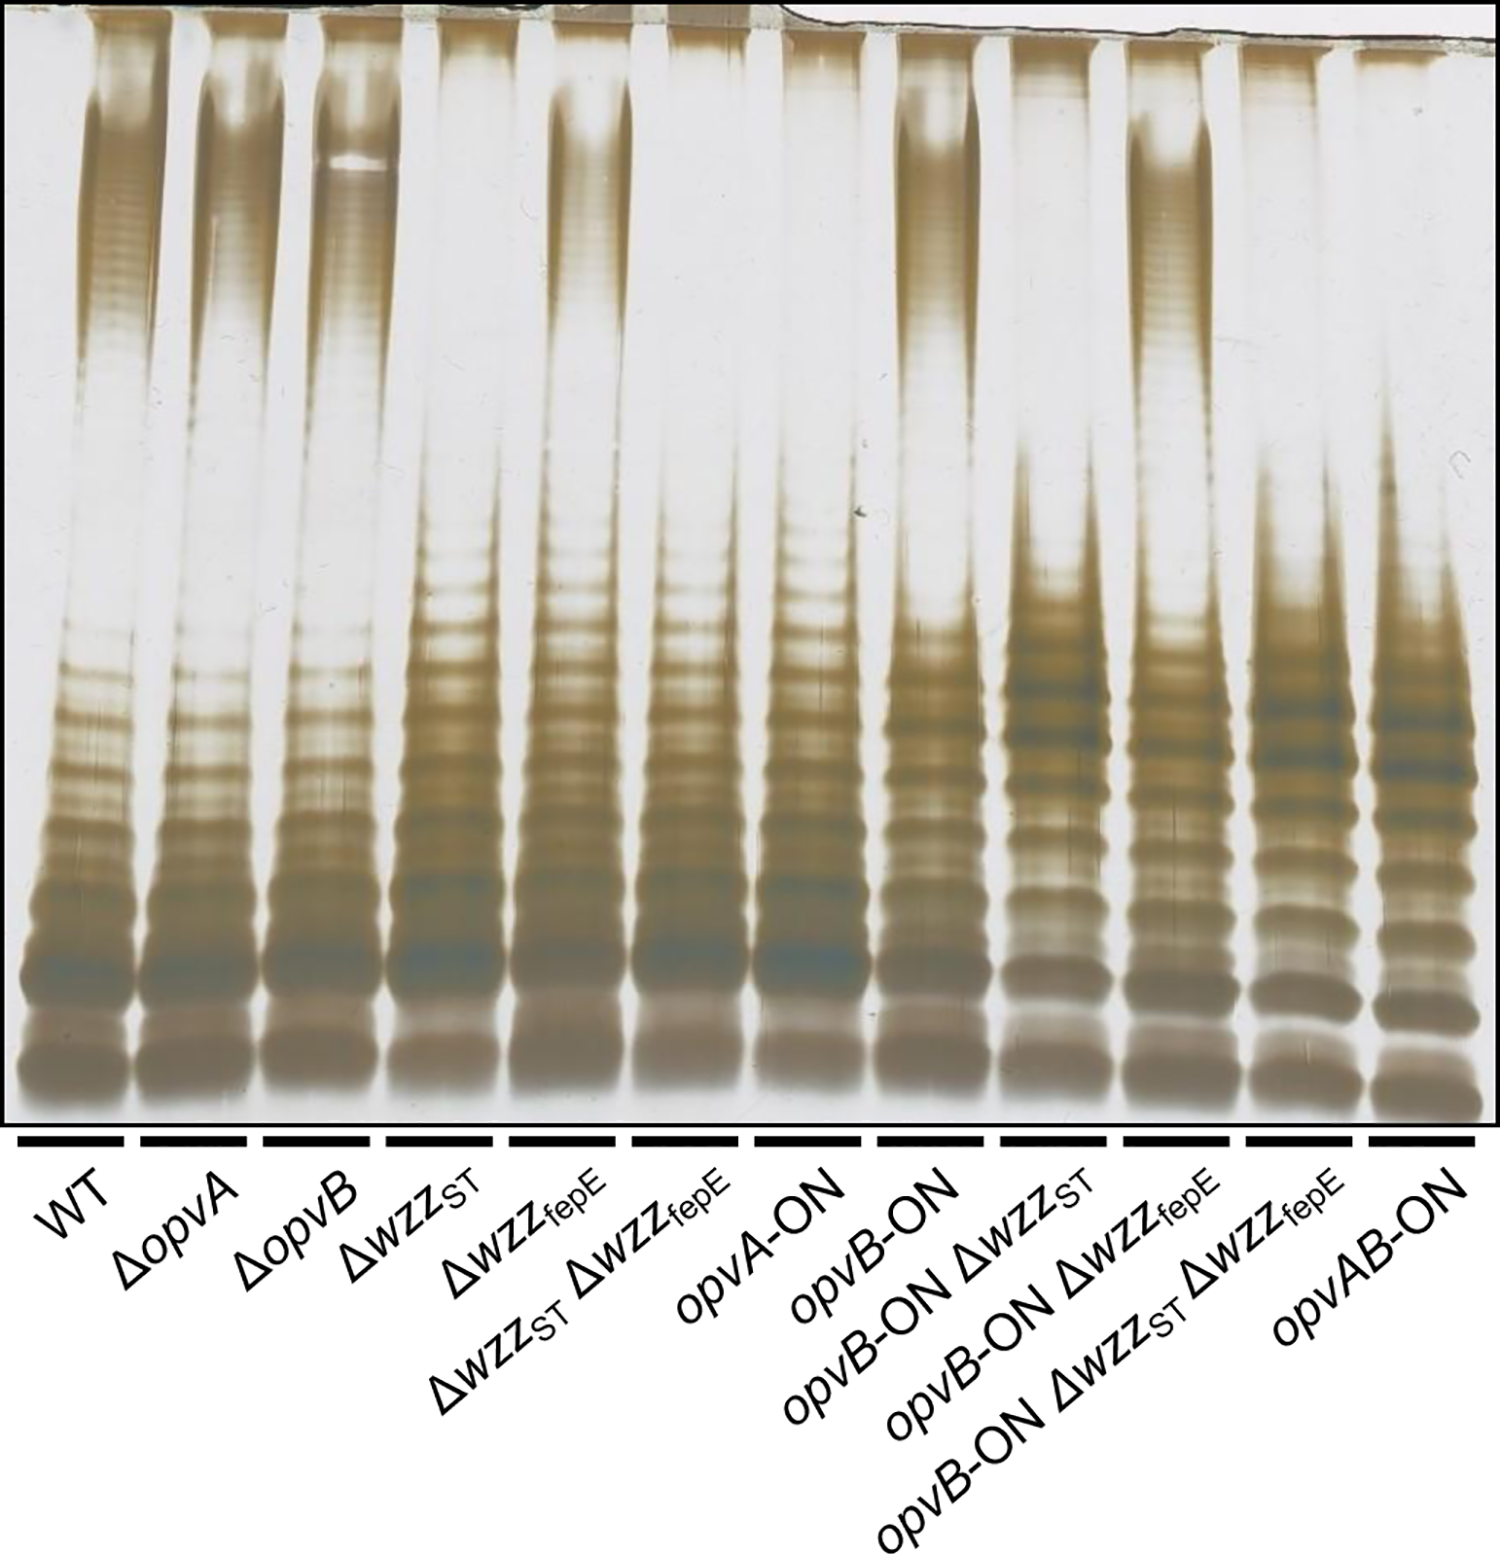 Analysis of the roles of OpvA and OpvB in the control of O-antigen chain length.